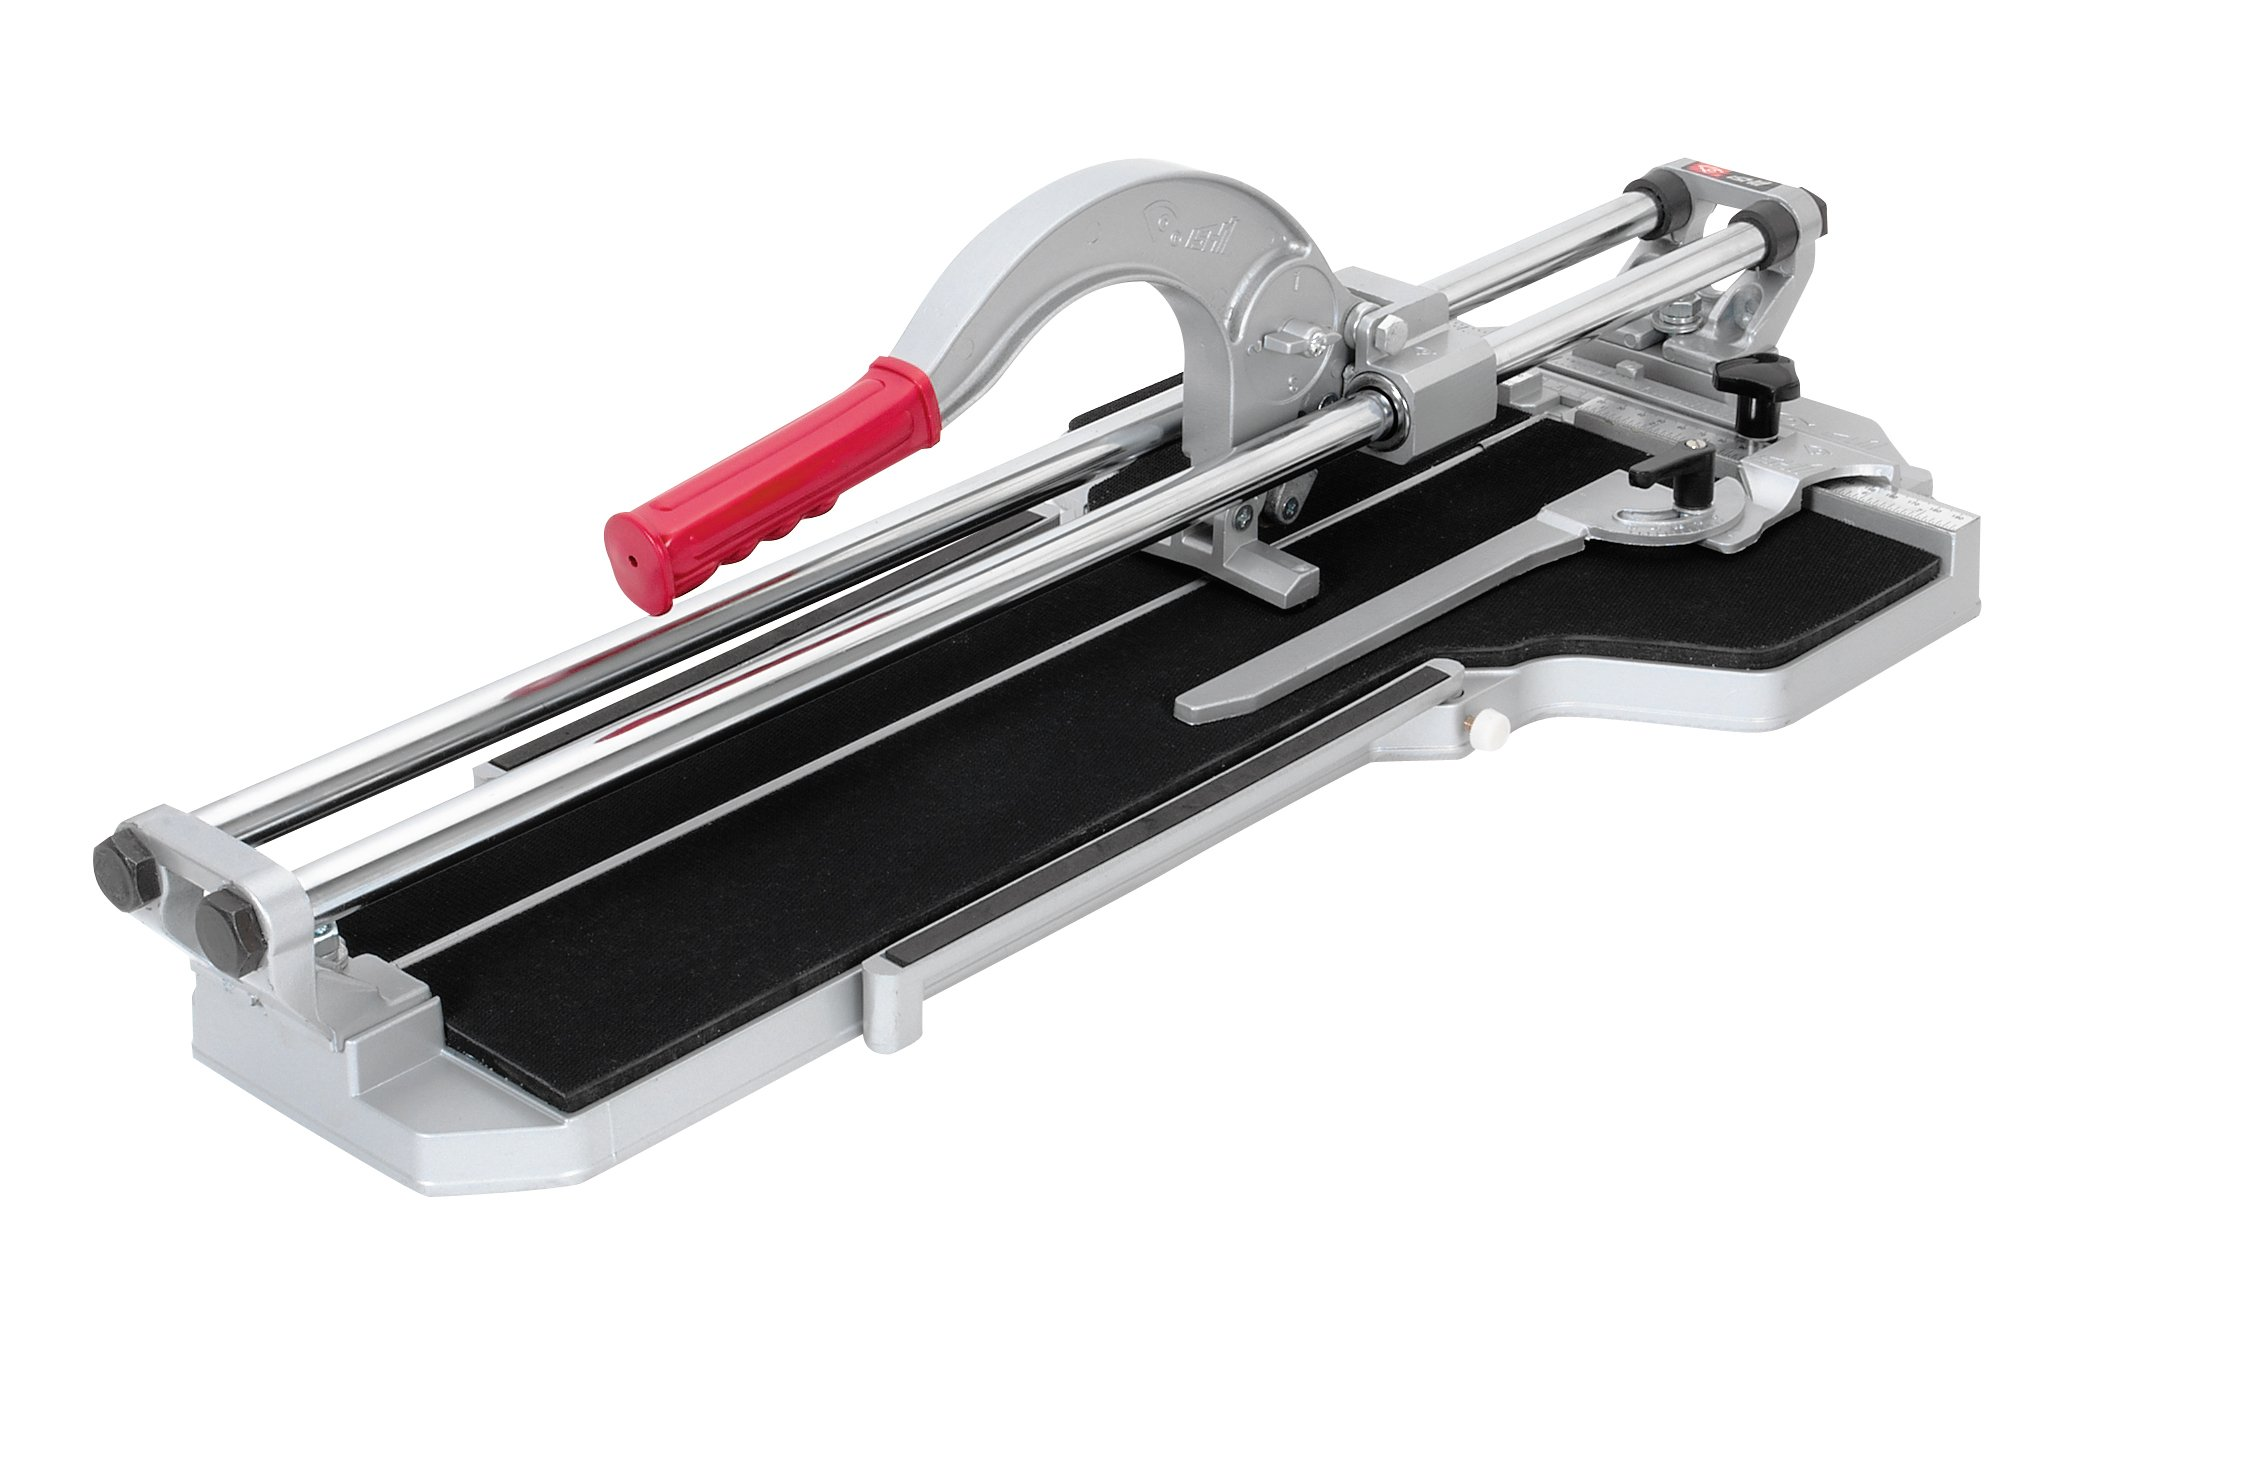 Brutus 10500 20-Inch  Rip Professional Porcelain Tile Cutter with 7/8-Inch  Cutting Wheel